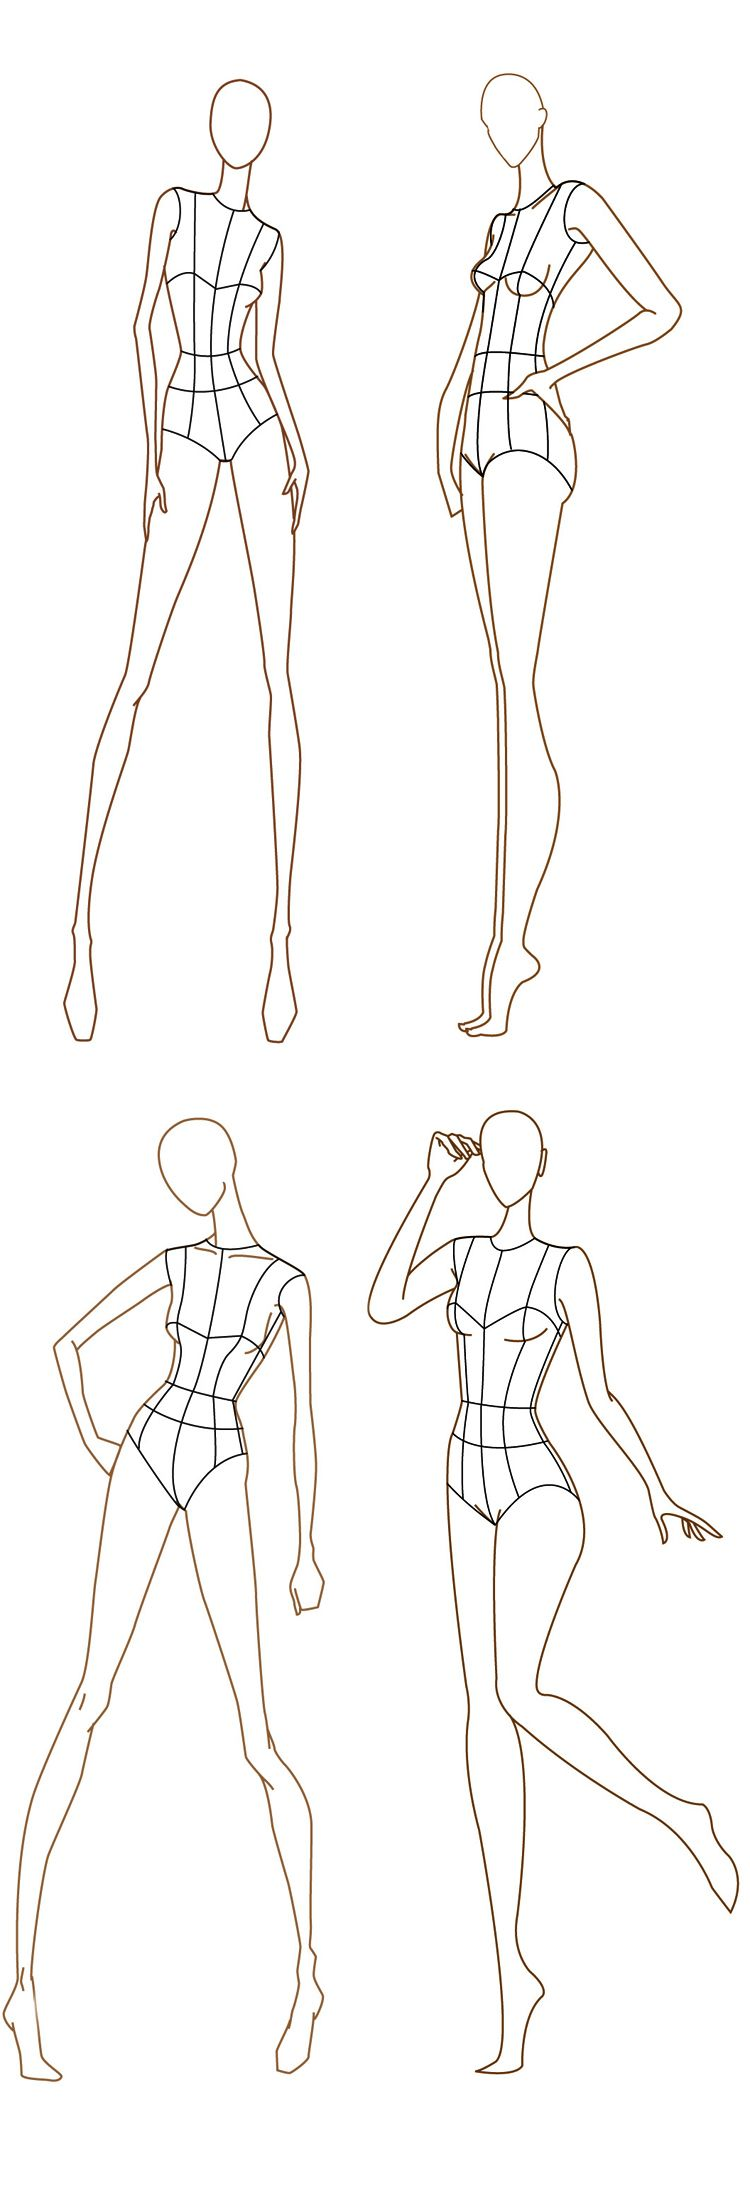 Free download fashion design templates more here http for Textiles body templates